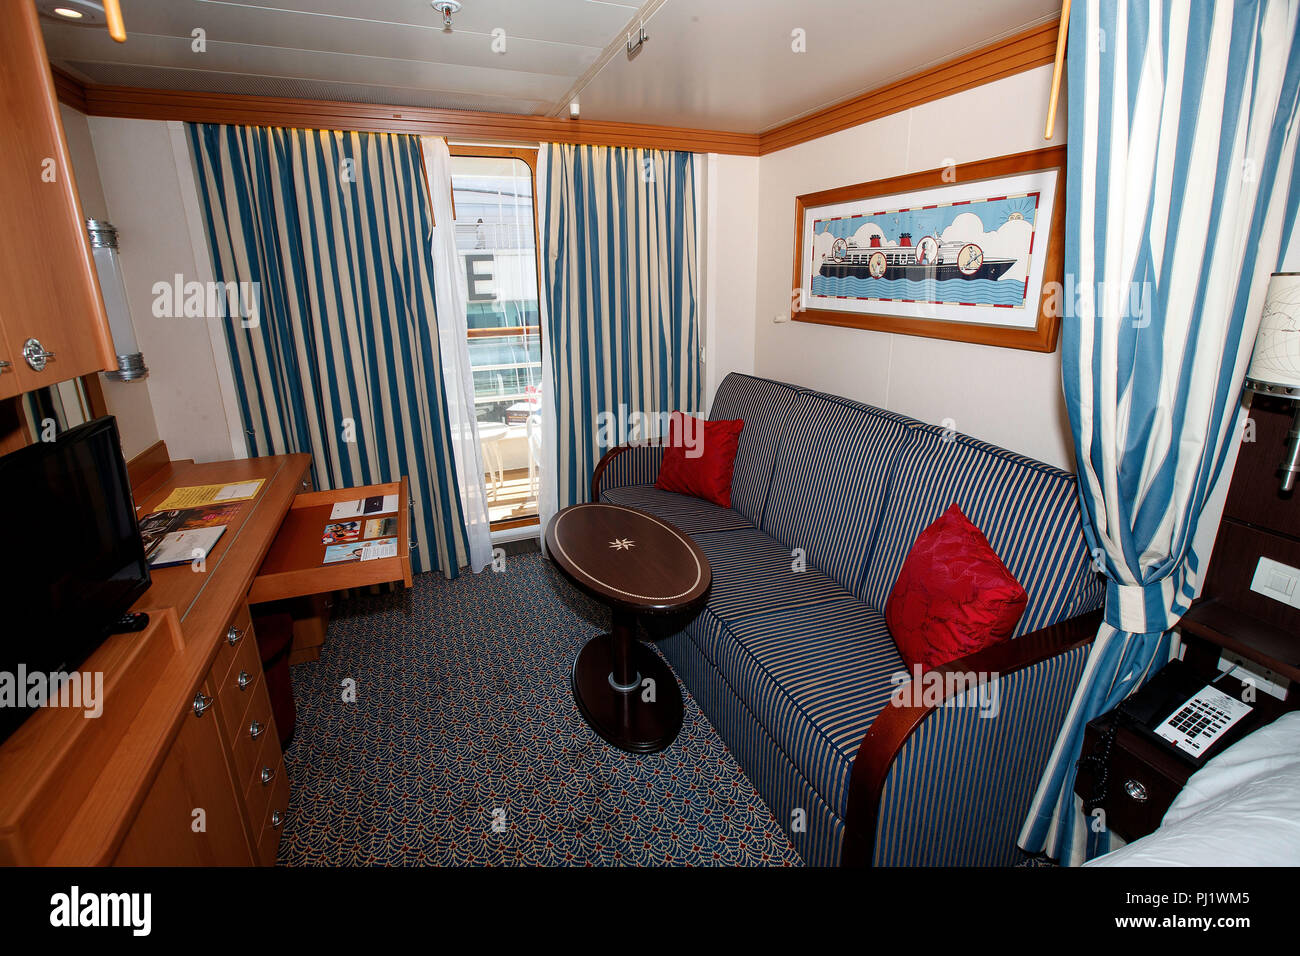 Deluxe Oceanview Stateroom with Verandah (05A), Disney Wonder Cruise Ship, Vancouver Harbor, Vancouver, British Columbia, Canada - Stock Image